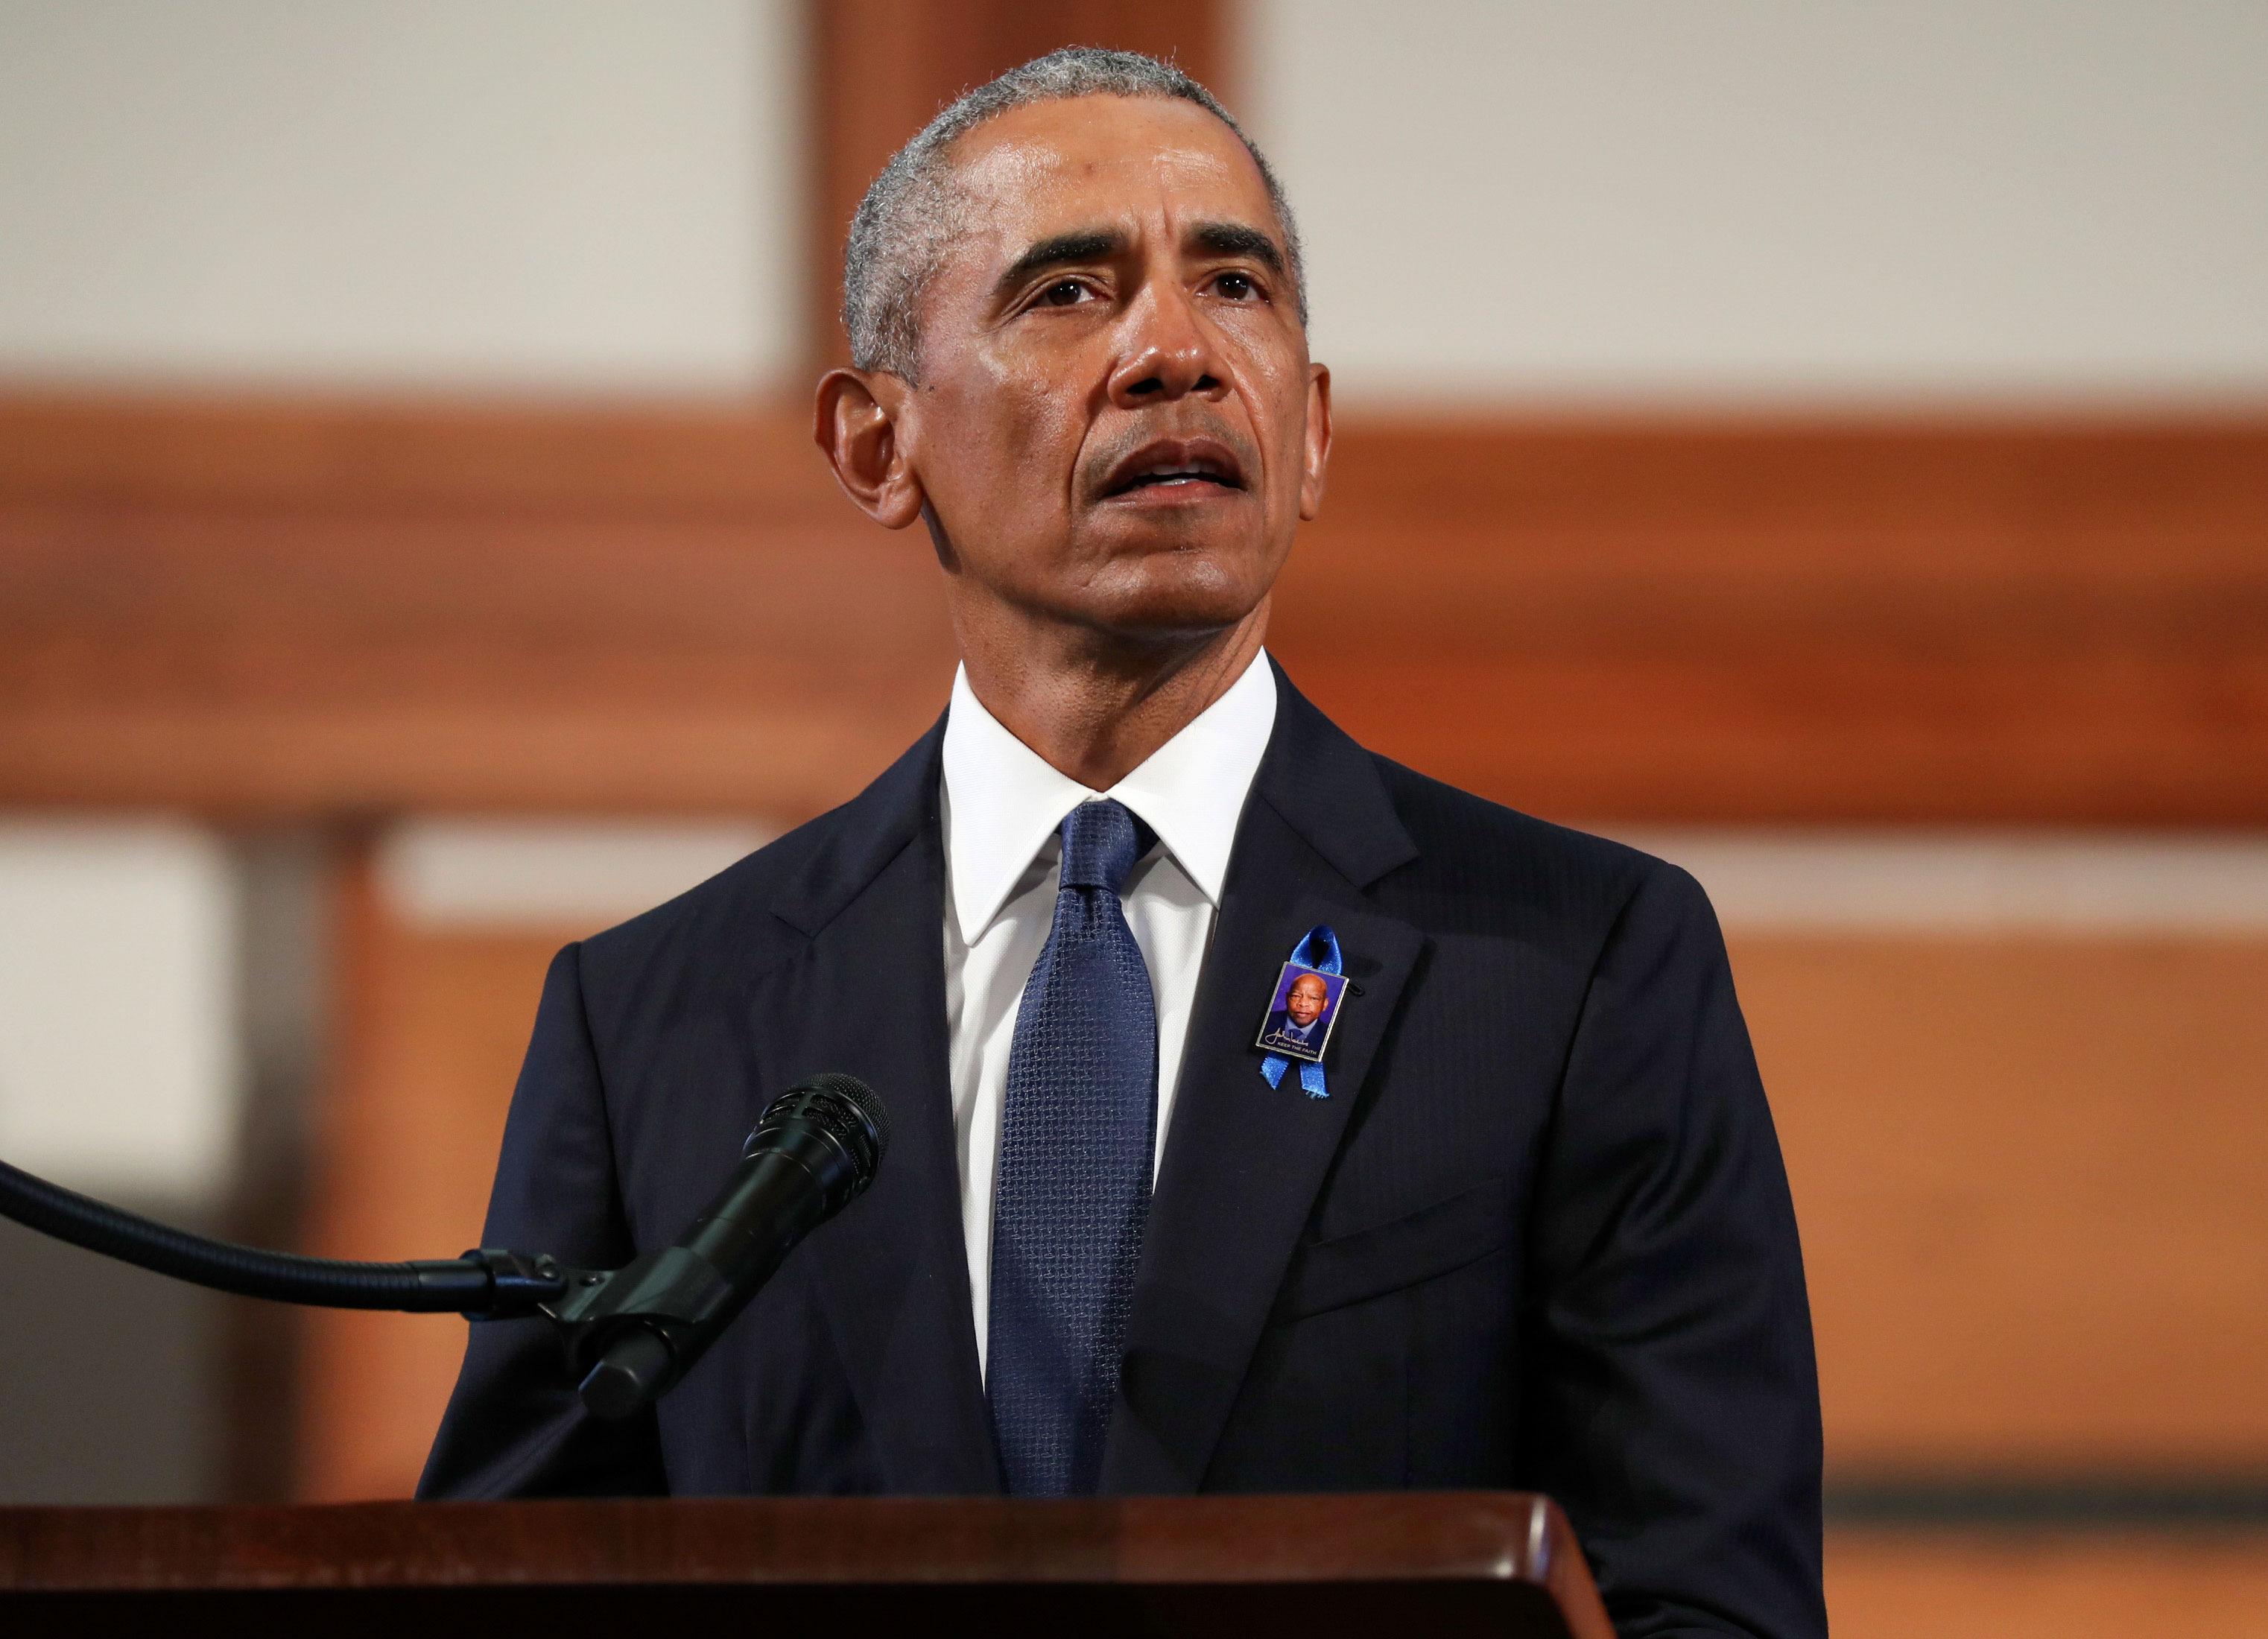 Obama urges voters to focus on down-ballot races to combat gerrymandering